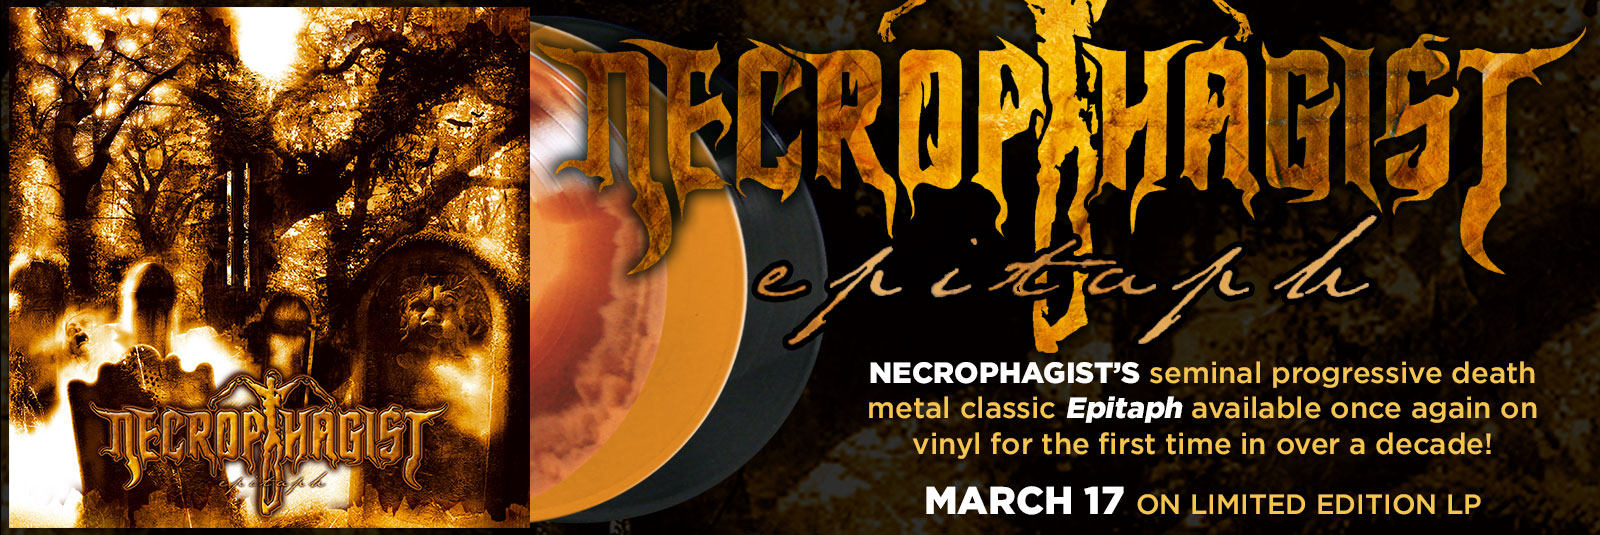 necrophagist-epitaph-reissue-lp-vinyl